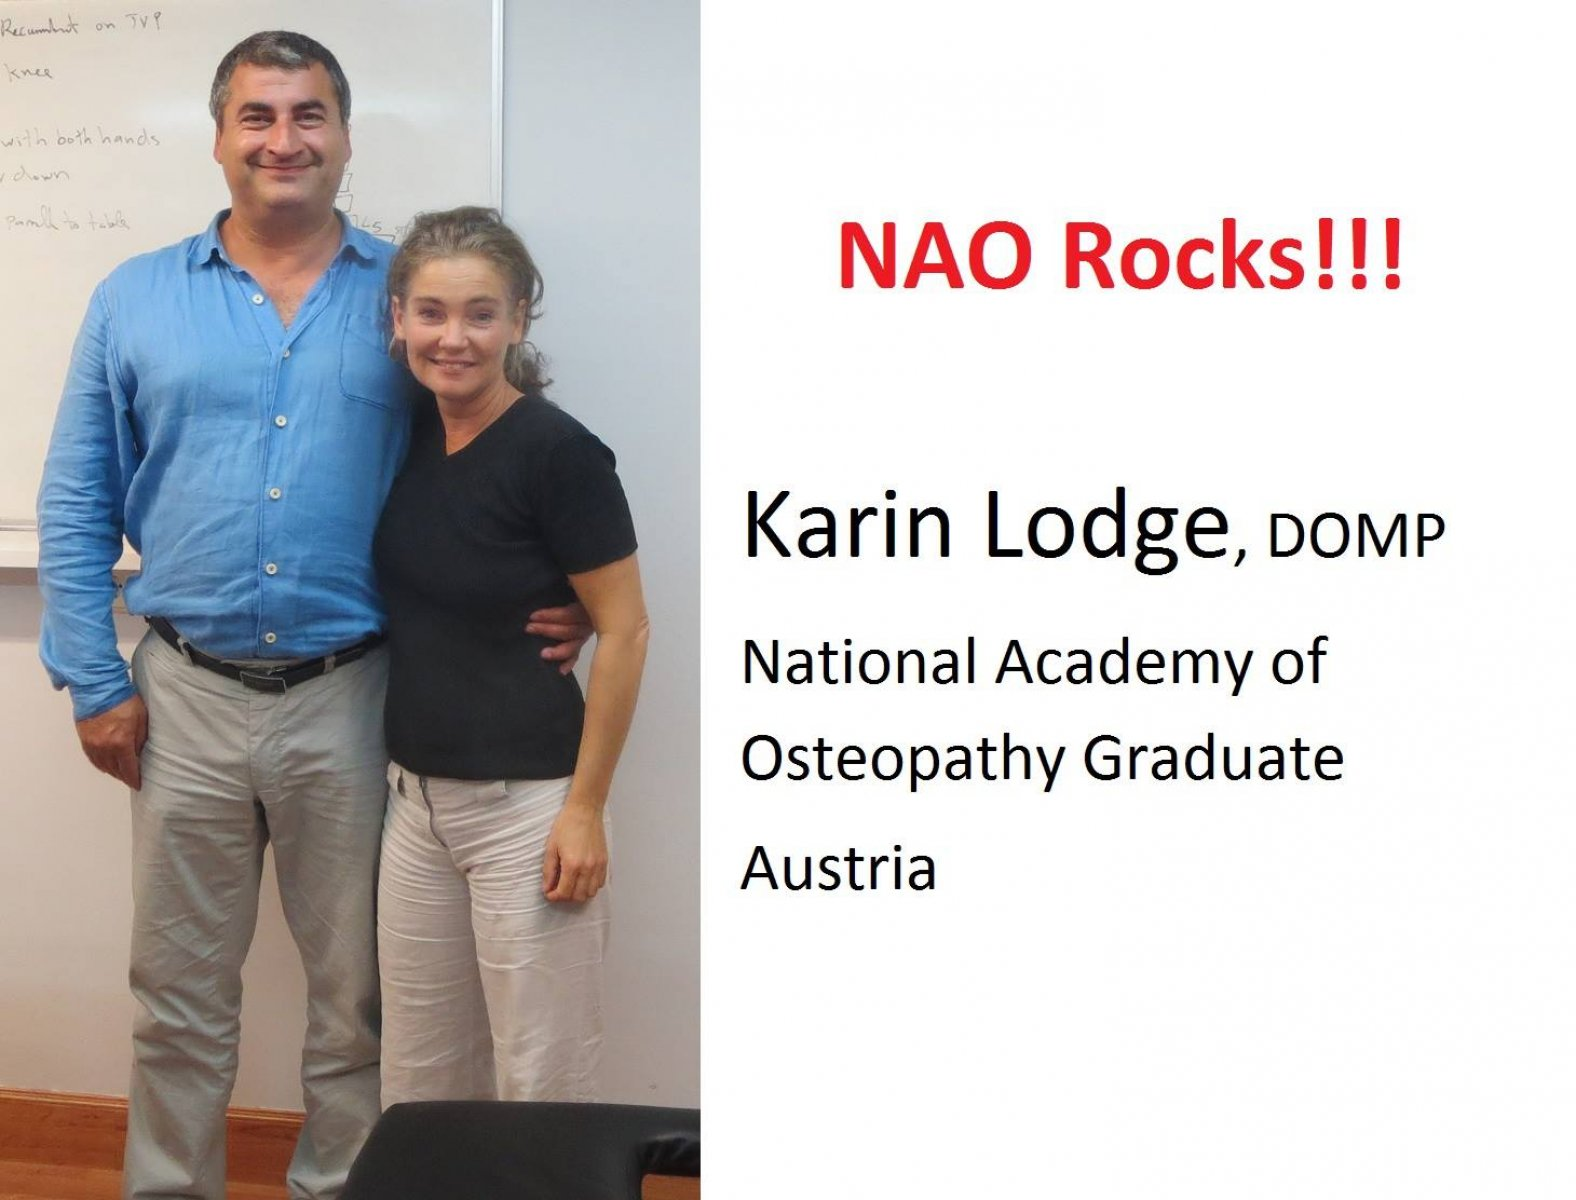 National Academy of Osteopathy   👍 - 4/5 - 44 Reviews   121